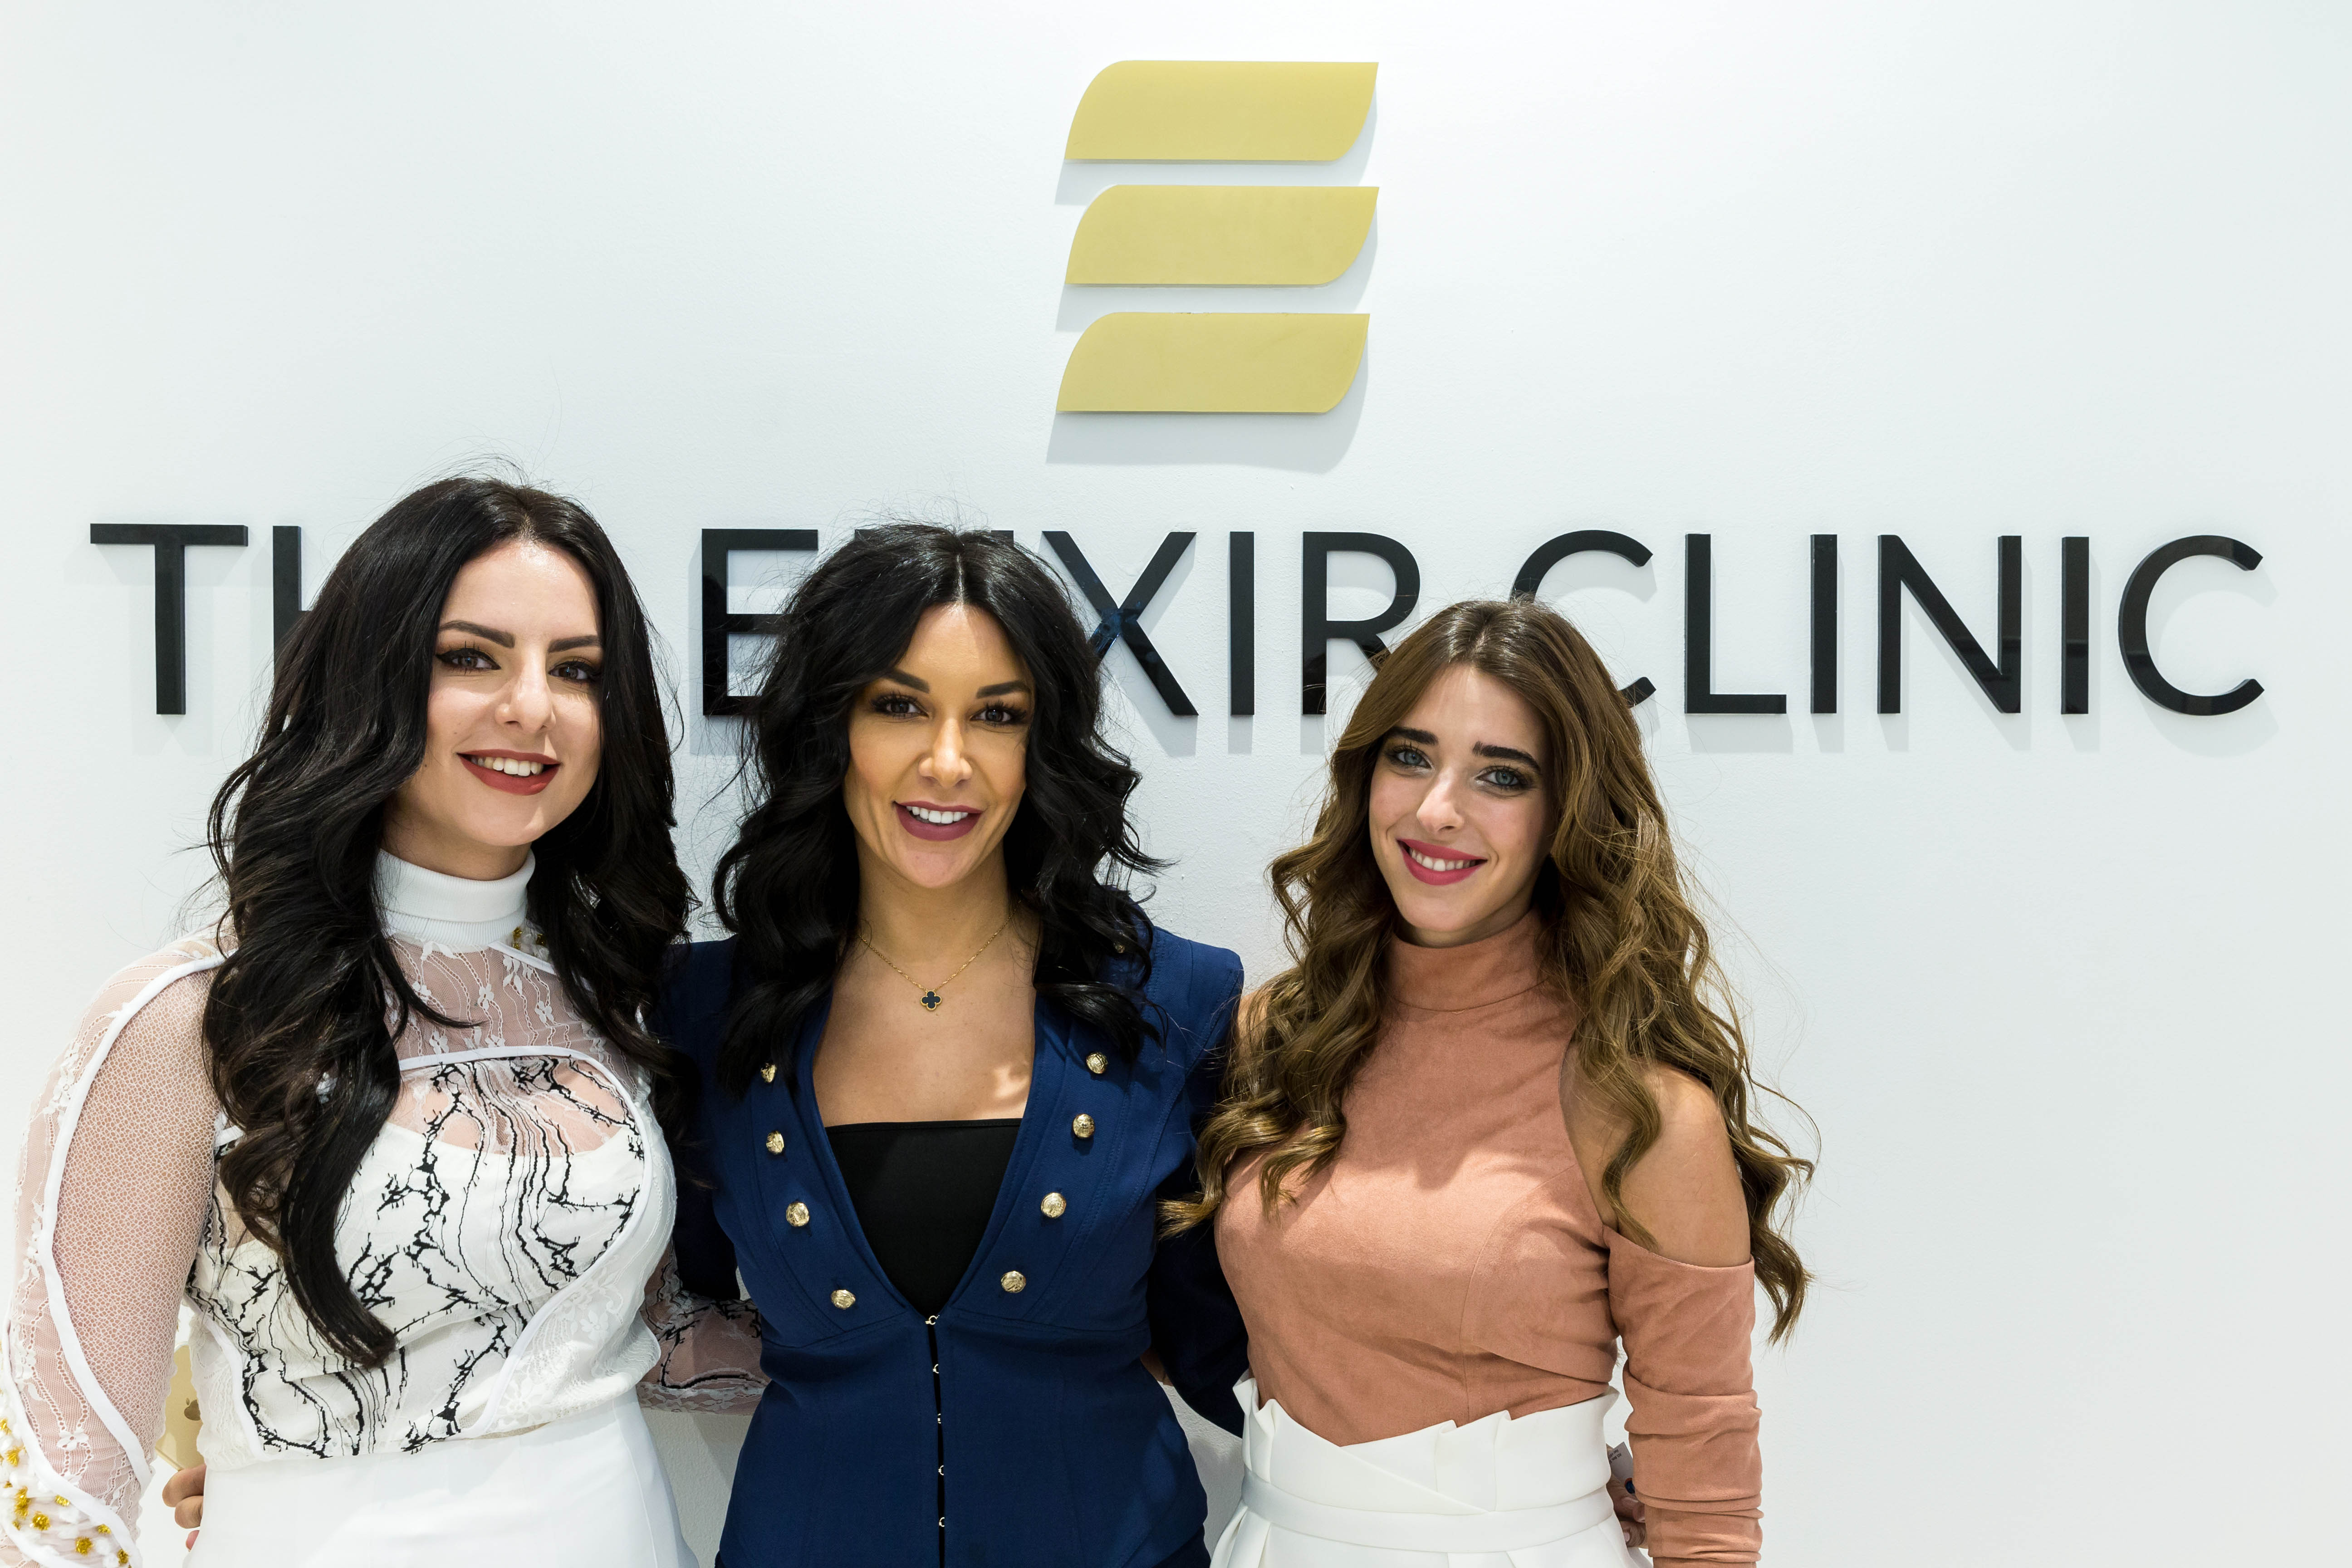 THE ELIXIR CLINIC OFFICIALLY INAUGURATES ABU DHABI STATE OF THE ART CLINIC